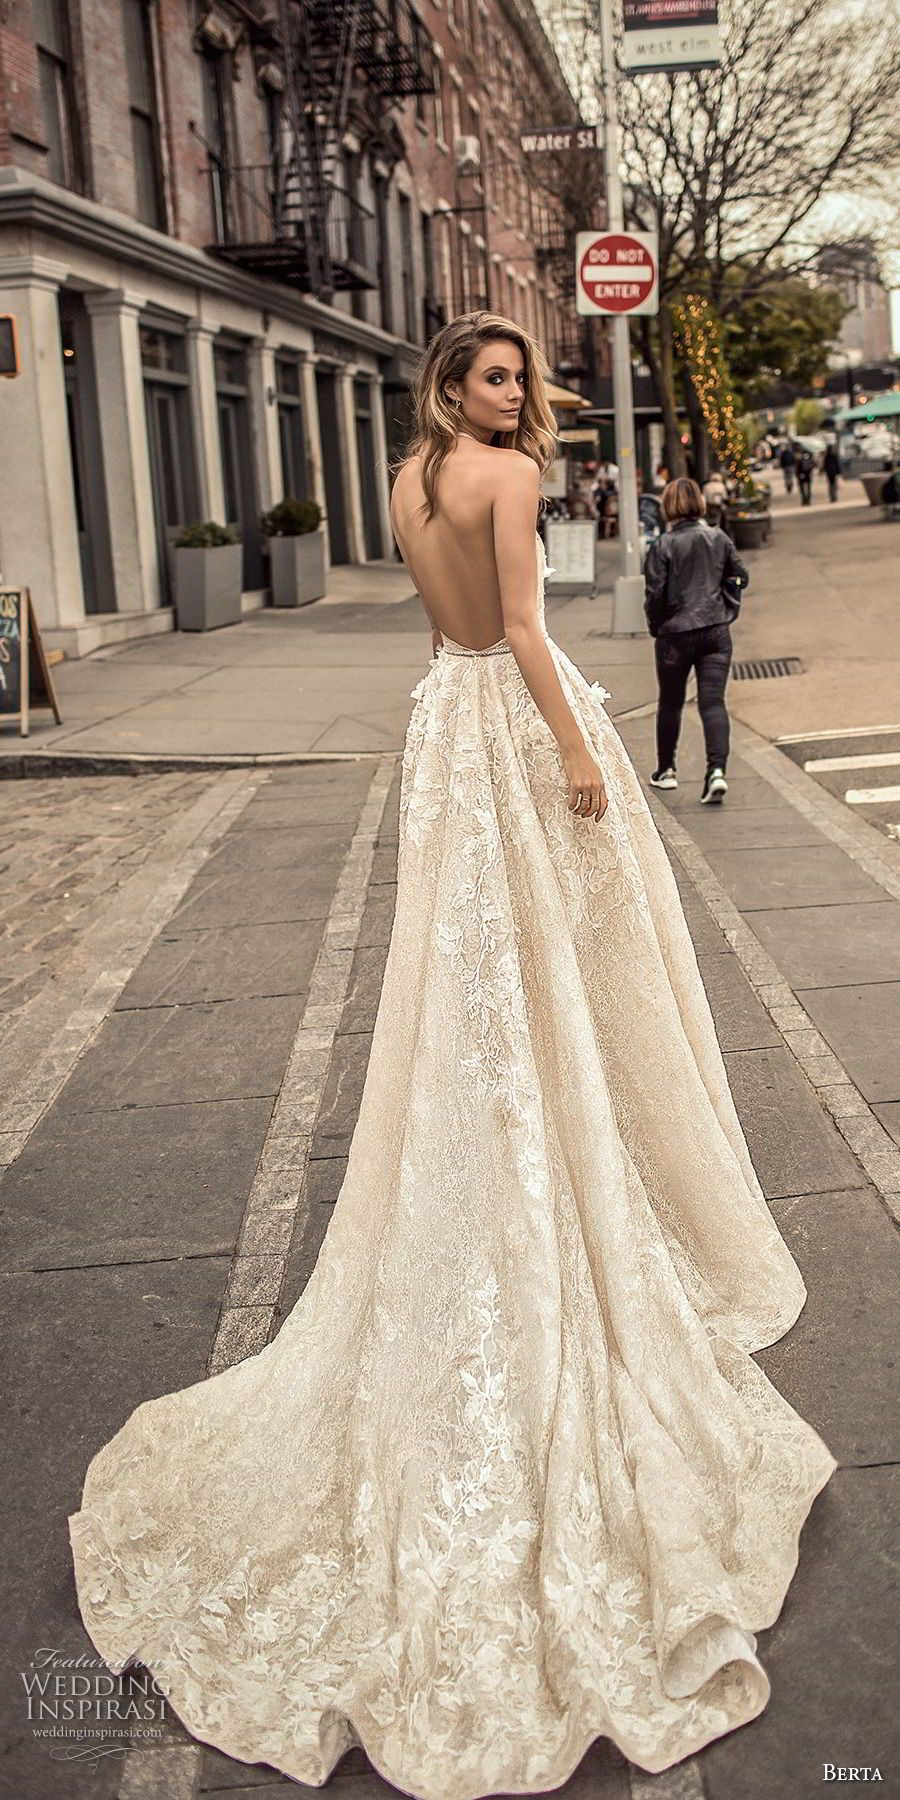 berta spring 2018 bridal sleeveless halter neck deep plunging v neck sexy  romantic modified a line wedding dress open back chapel train (5) bv --  Berta ... 629edd4ae